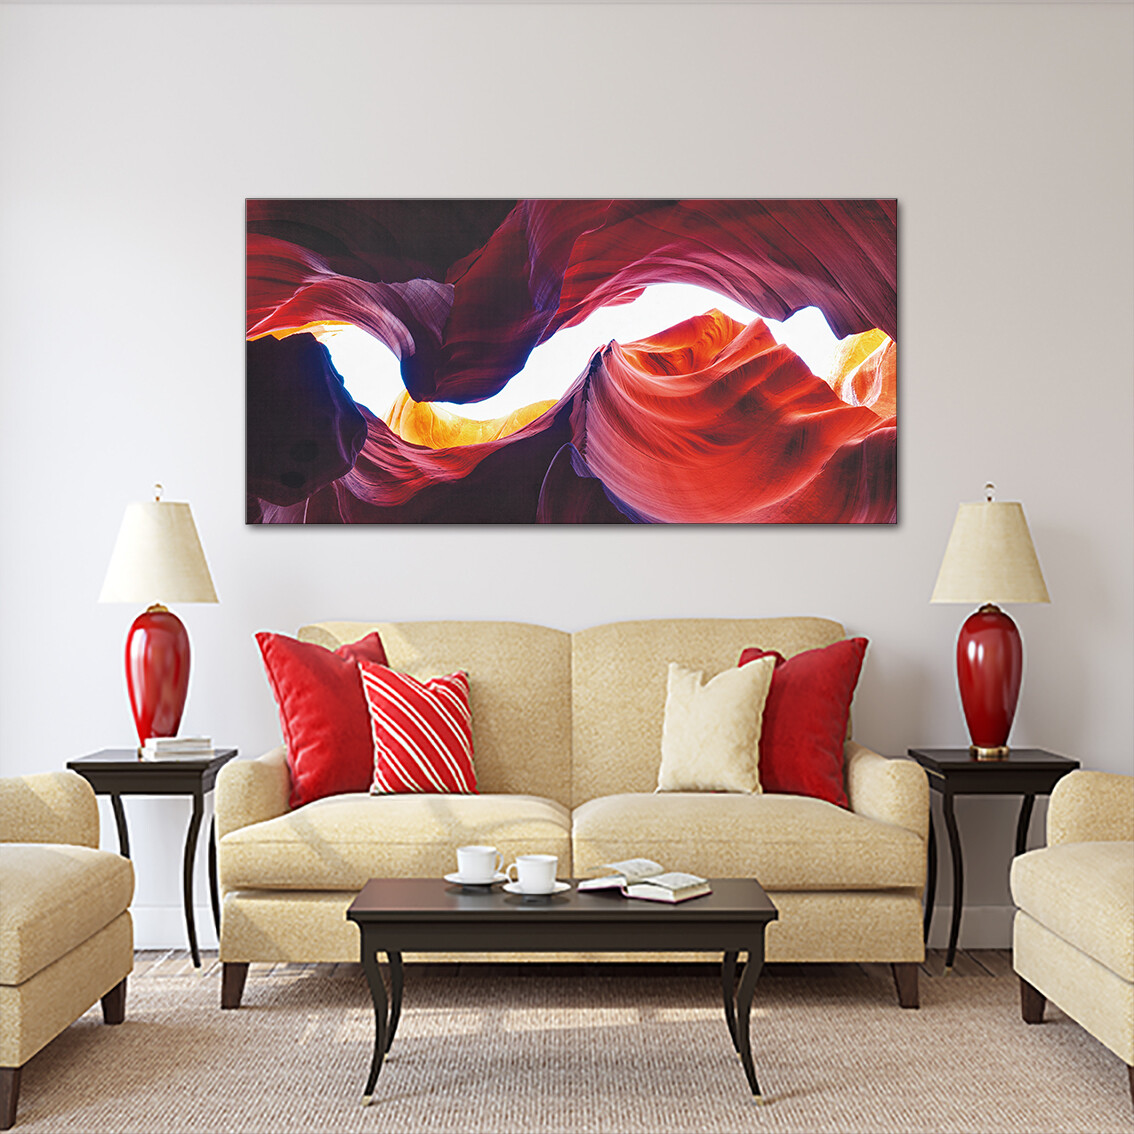 Antelope Canyon - Modern Luxury Wall art Printed on Acrylic Glass - Frameless and Ready to Hang